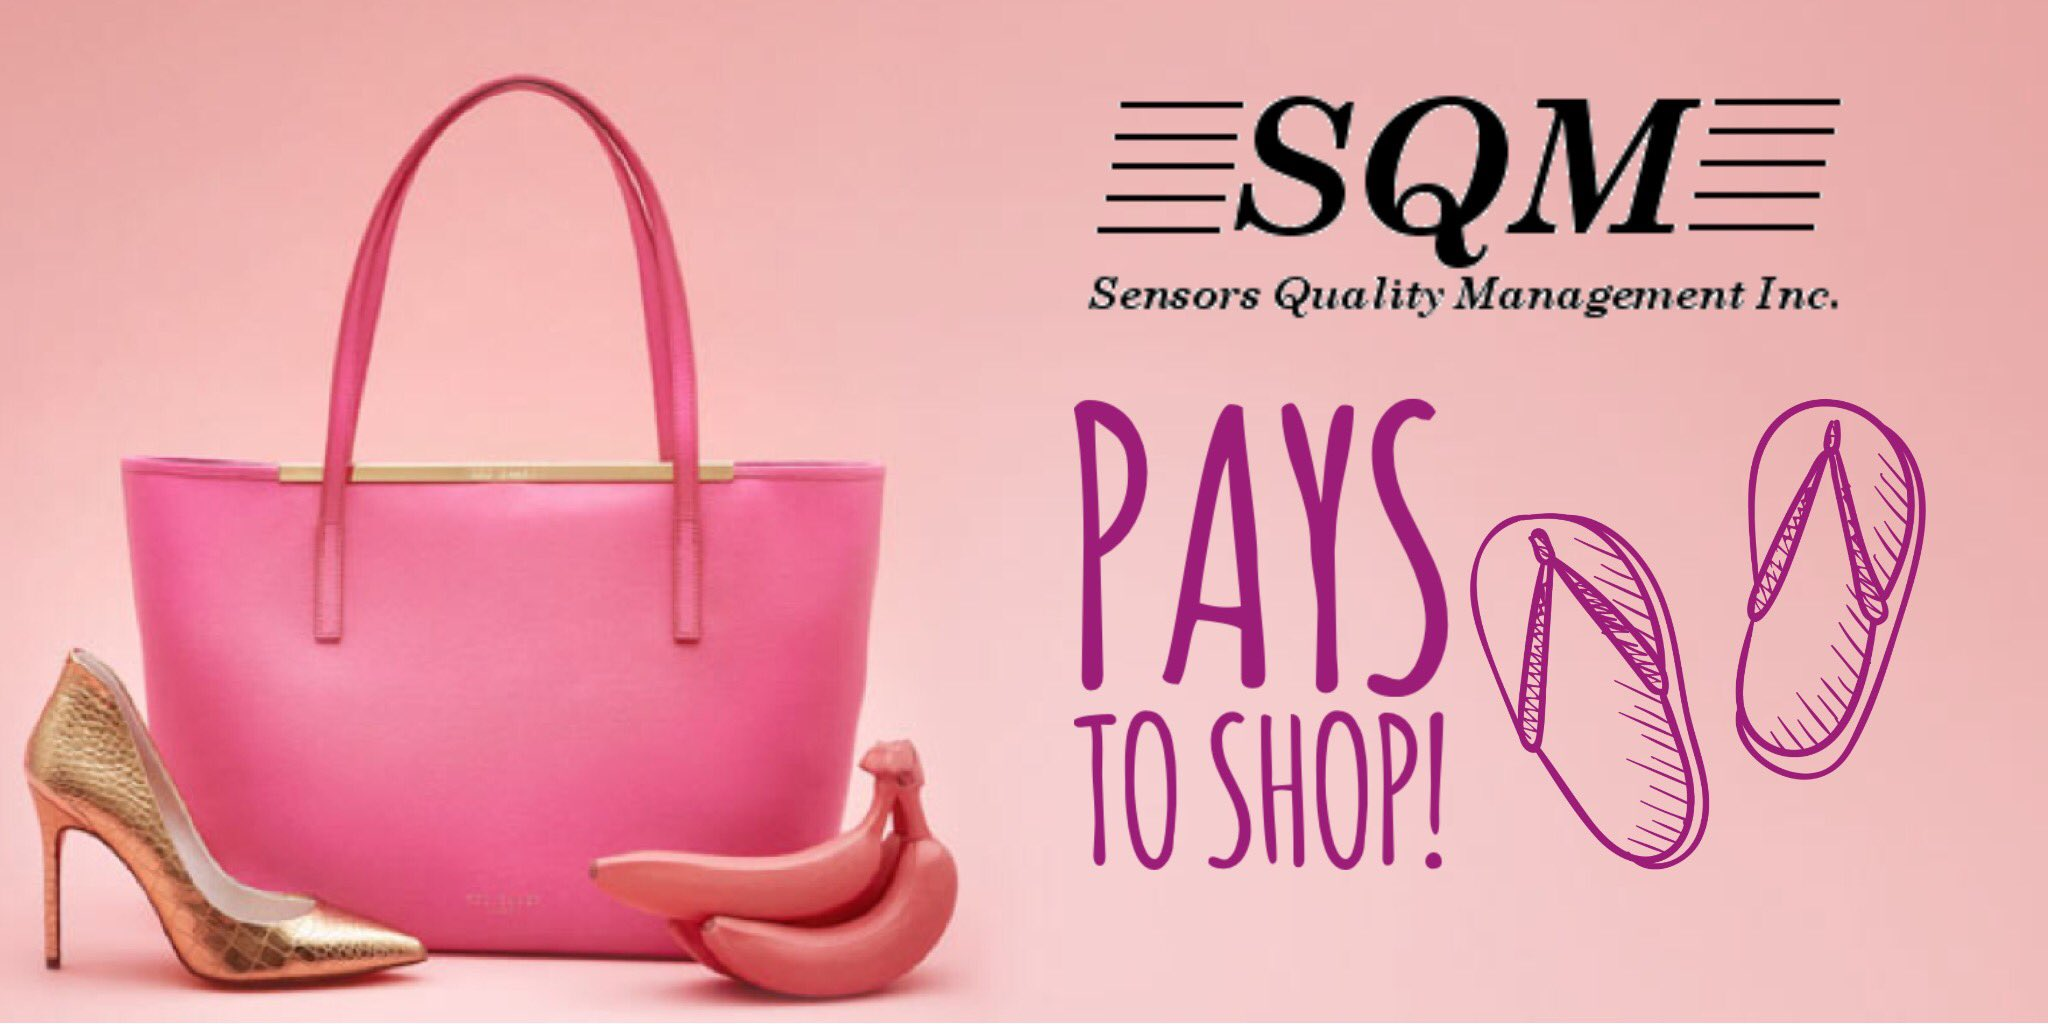 SQM Inc., Pays to Shop!